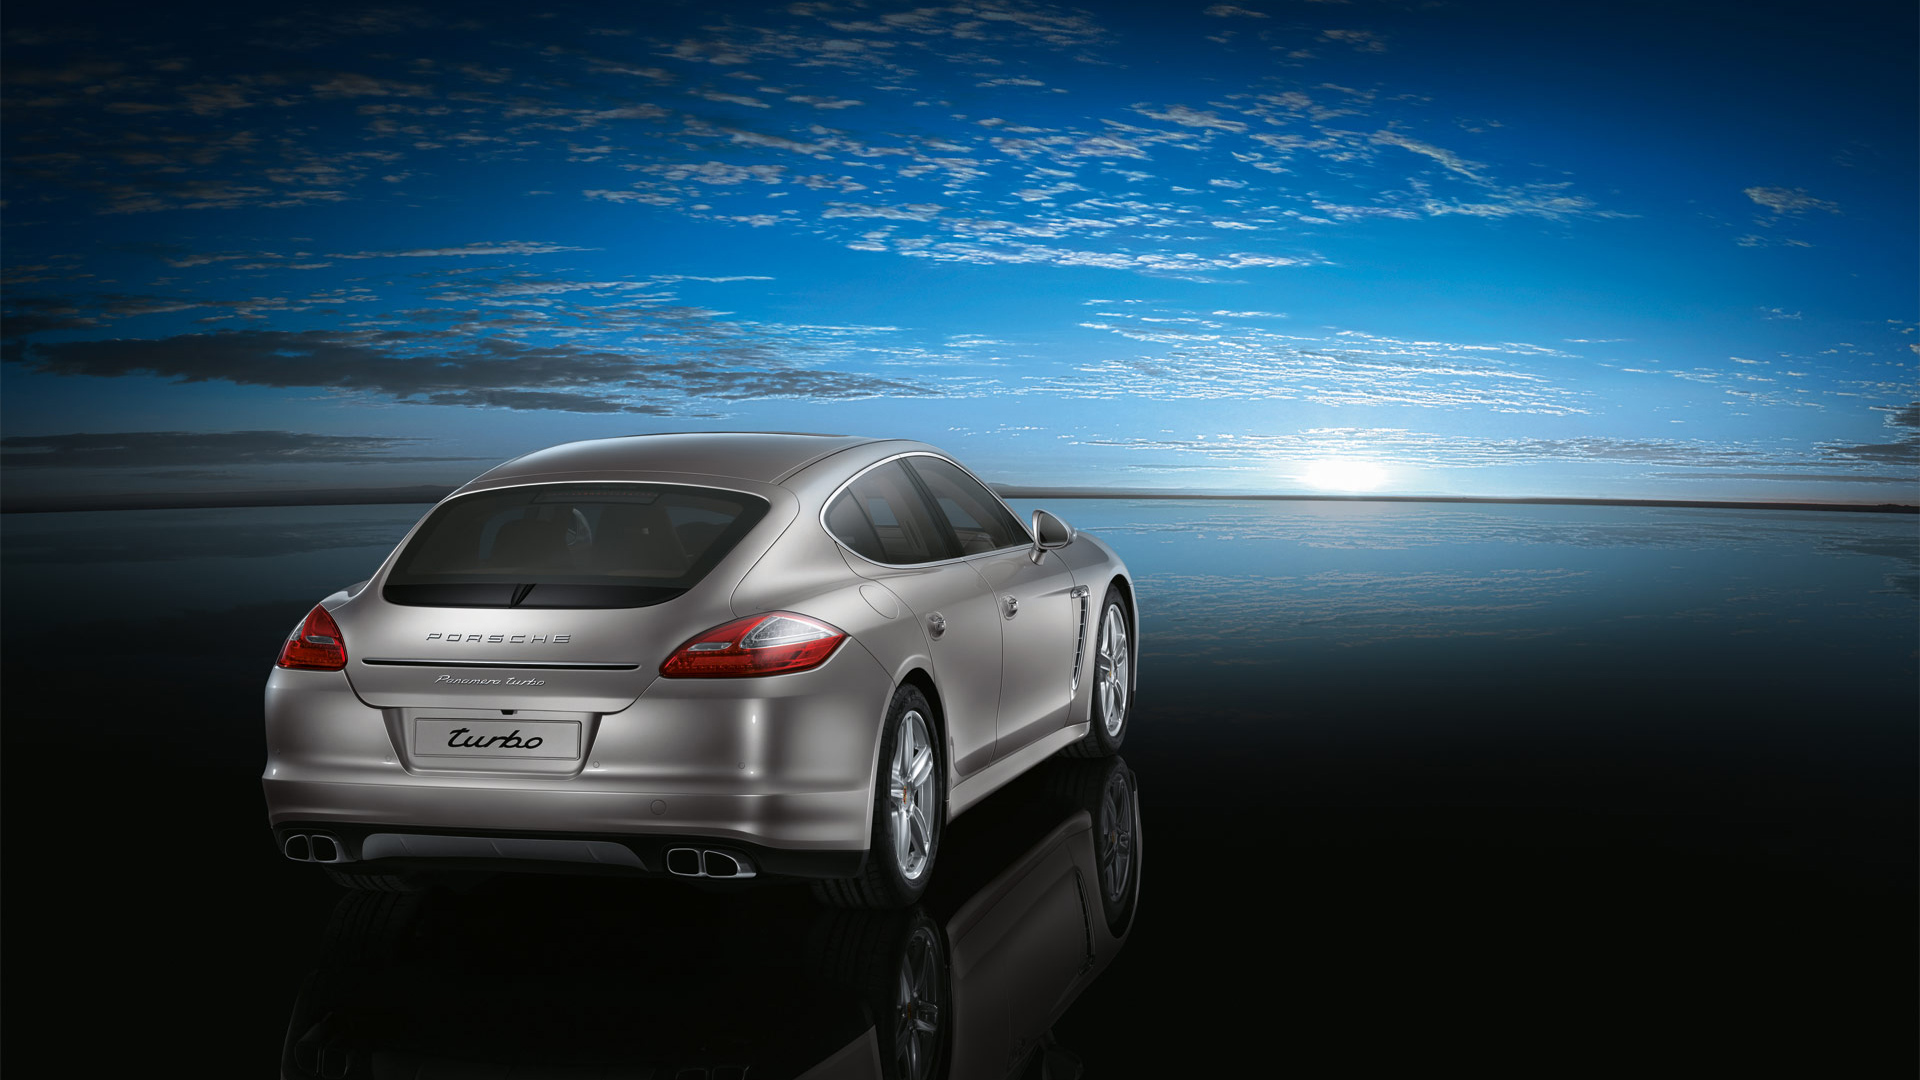 Porsche Panamera Turbo 2 Wallpapers HD Wallpapers 1920x1080